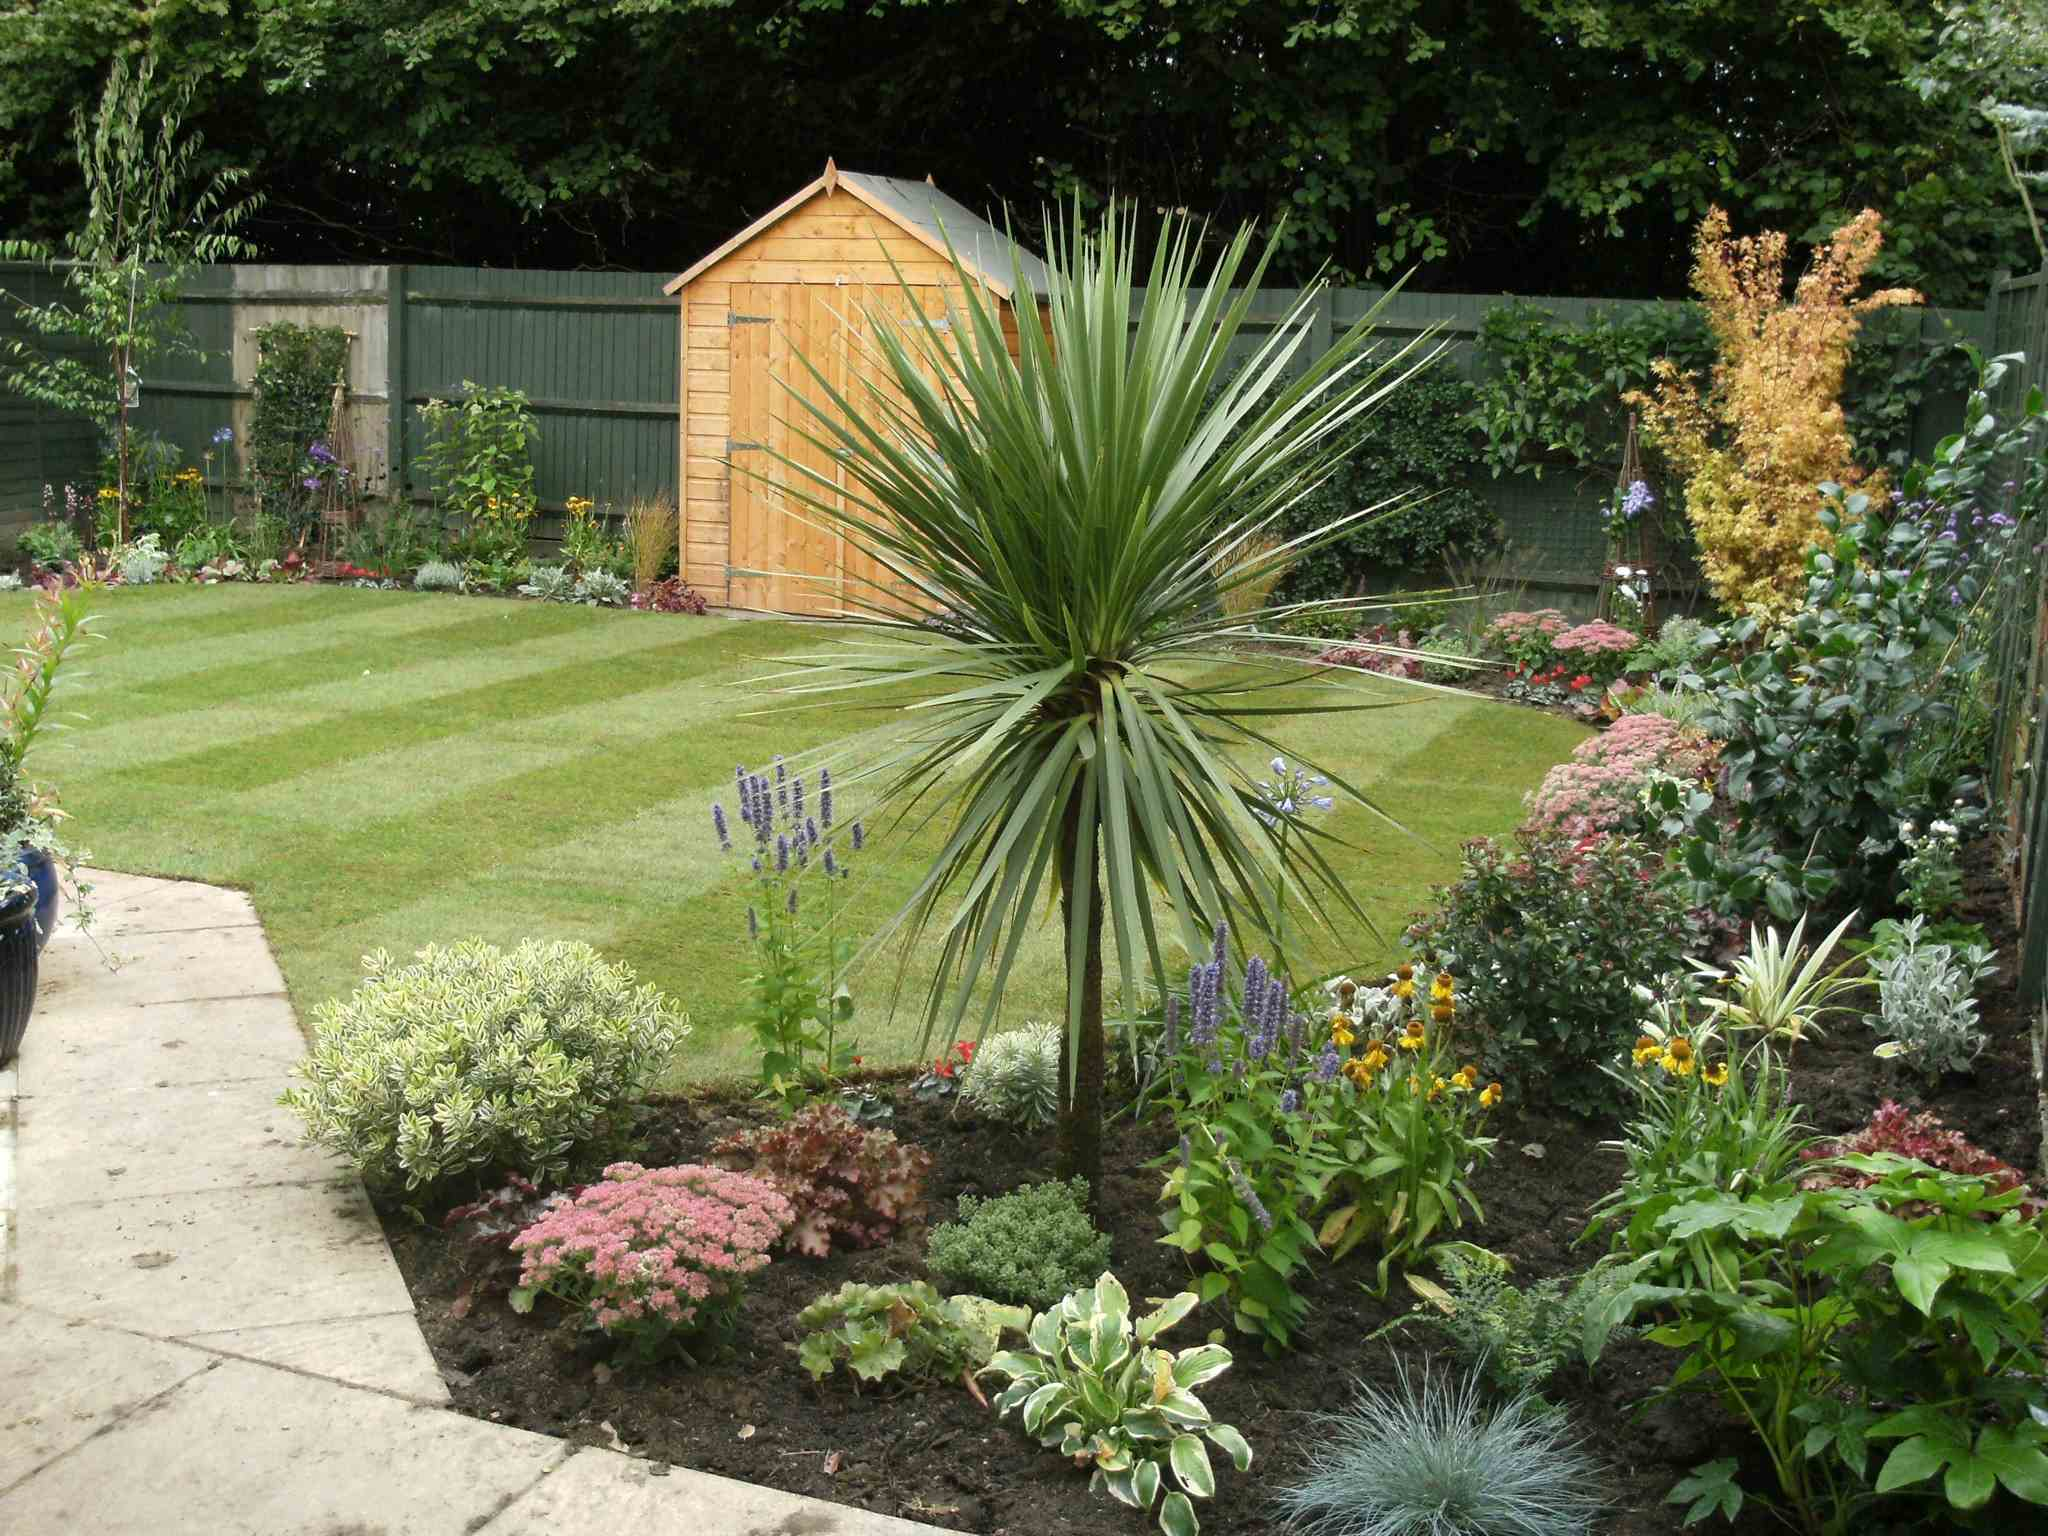 Garden Shed and Grass Landscaping